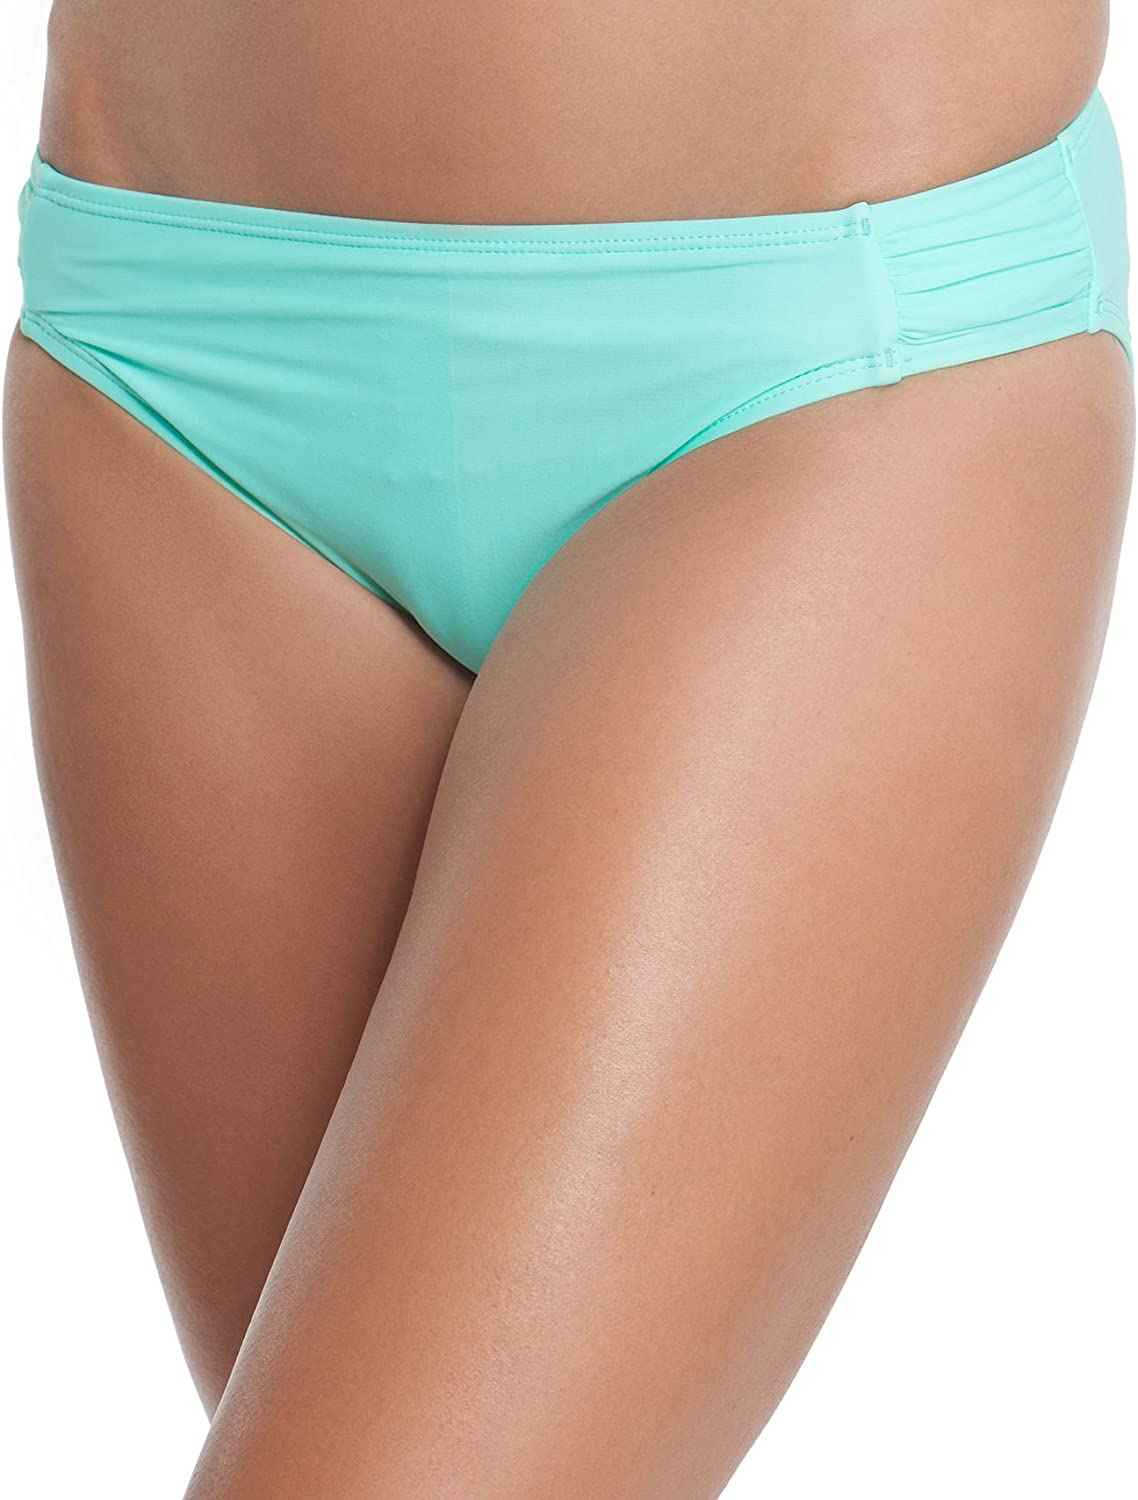 Go Gossip Solids Hipster Mermaid bluee  Small